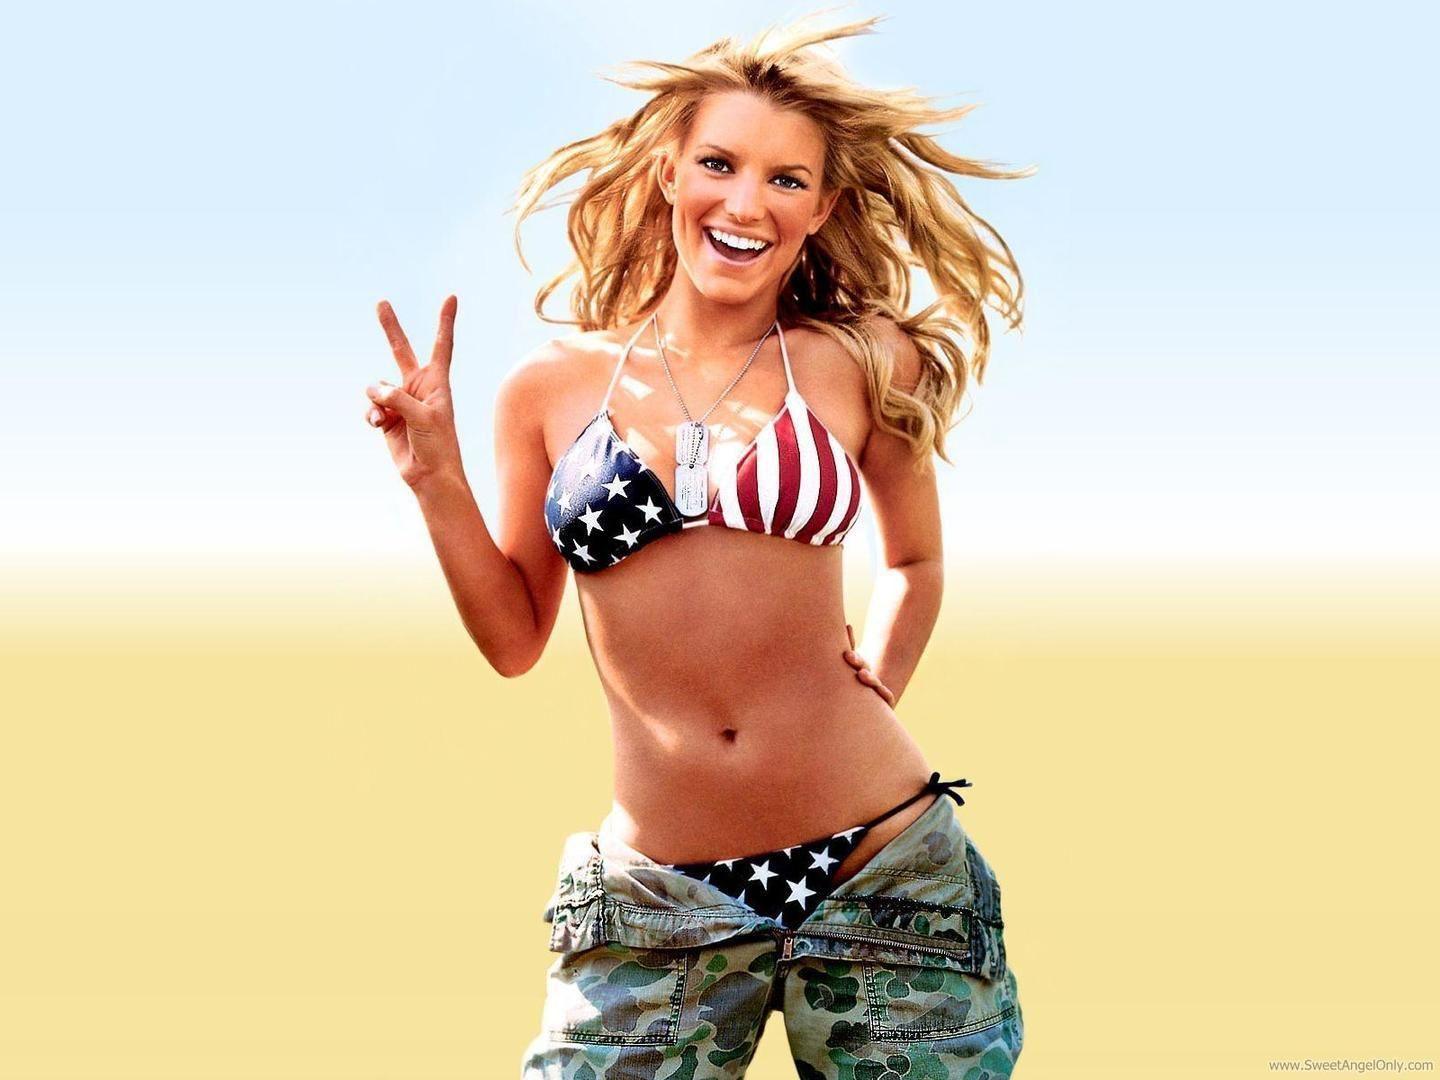 Jessica Simpson Dukes Of Hazzard Diet Wallpaper Hd Wallpaper American Flag Bikini Patriotic Bikini Flag Bikini